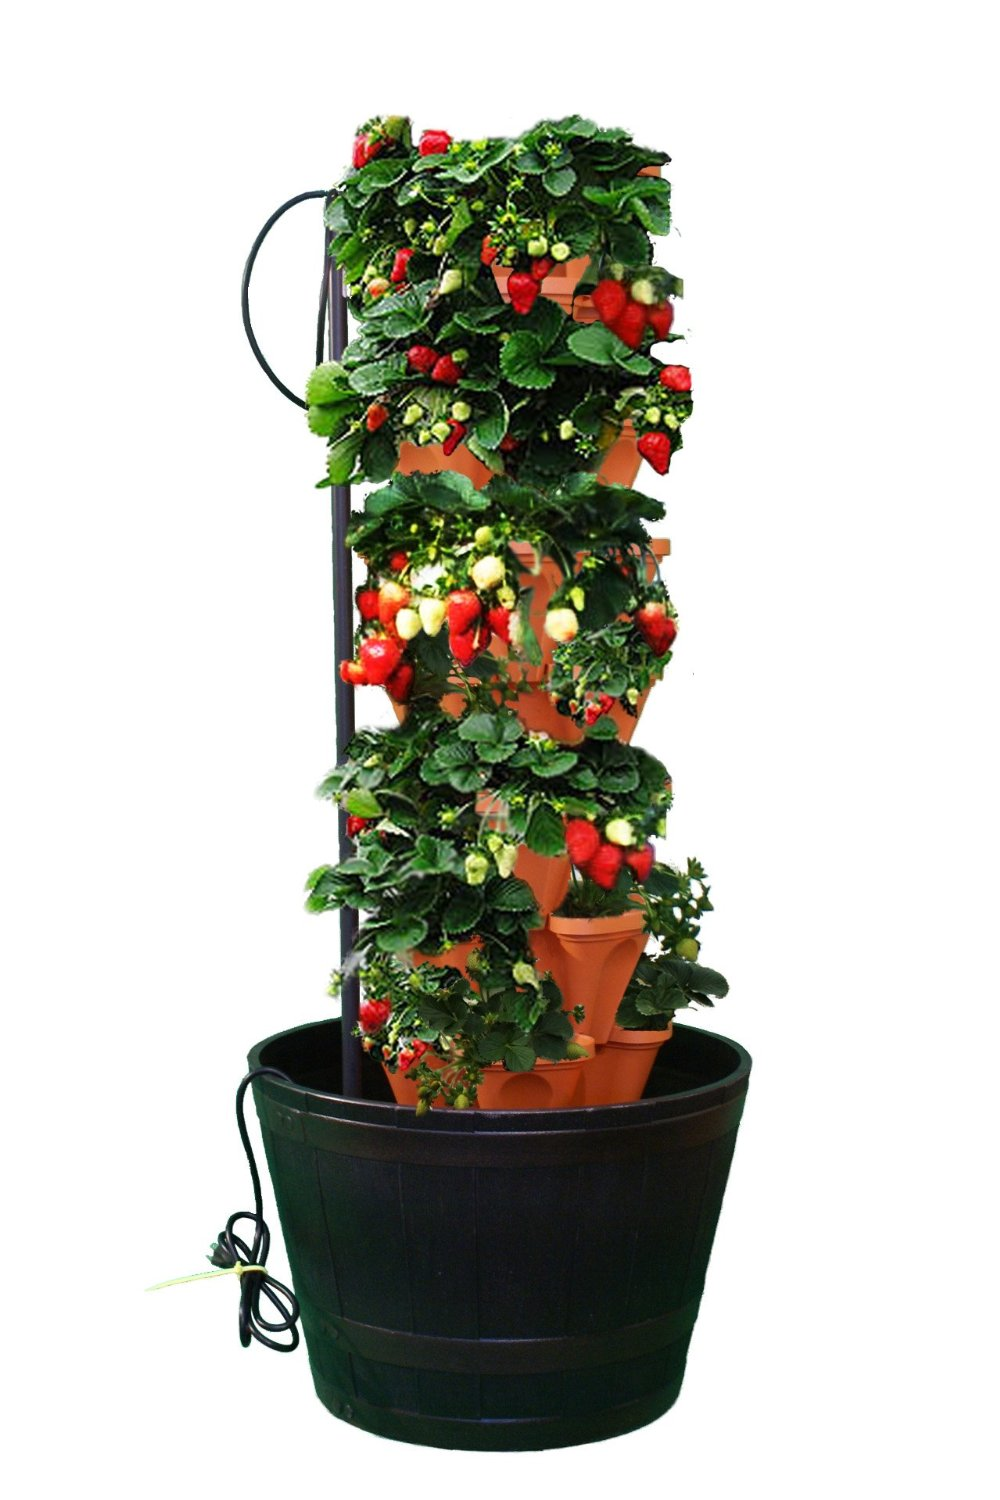 hydroponic systems grow a garden without soil tins 39 corner. Black Bedroom Furniture Sets. Home Design Ideas